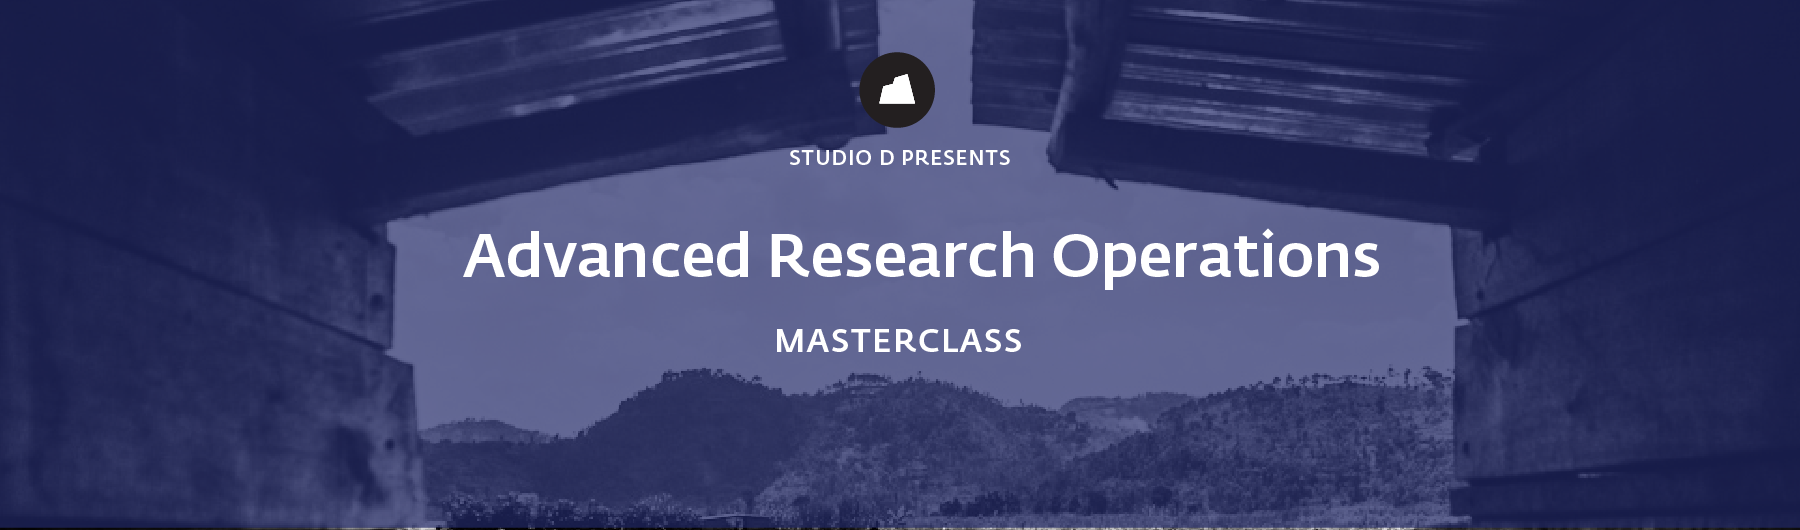 Research Ops Advanced Masterclass, 22 May 2020, San Francisco